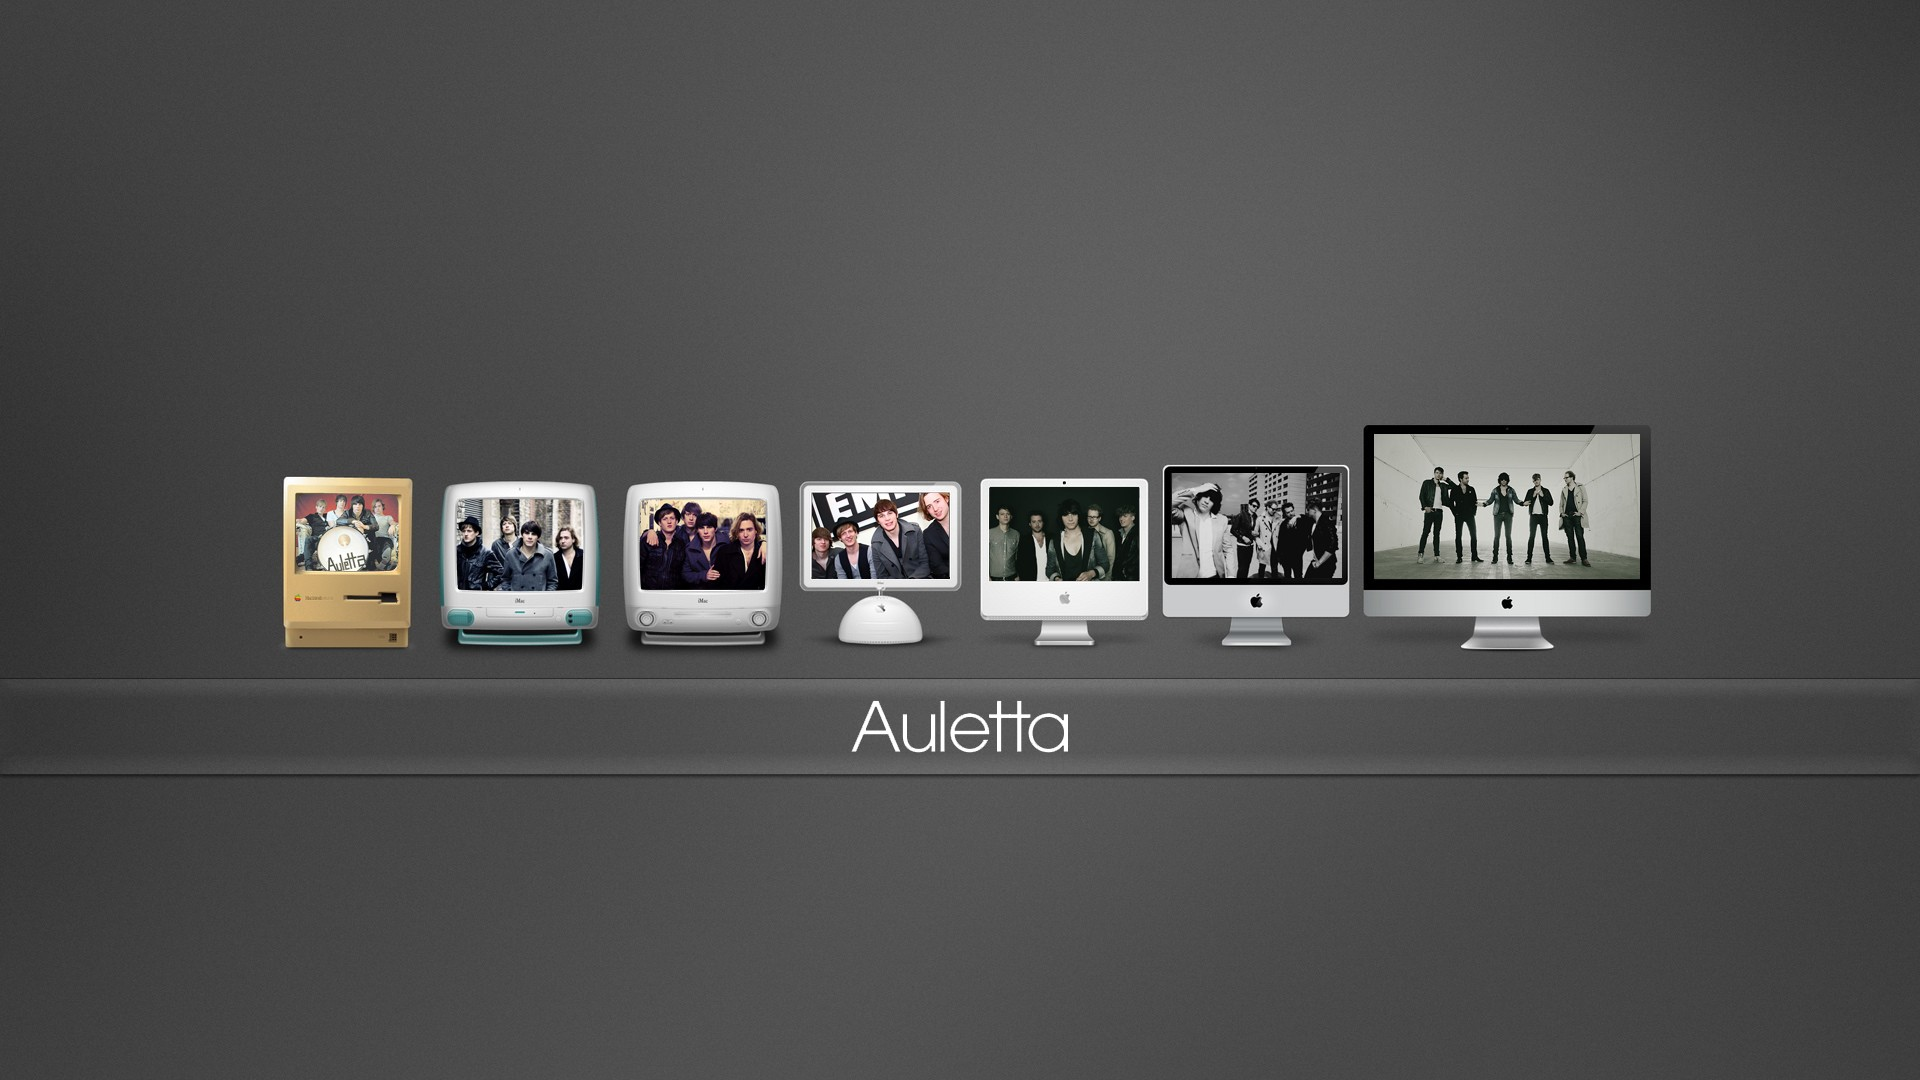 rock, historical, indie, Rock Band, Apple, Auletta :: Wallpapers